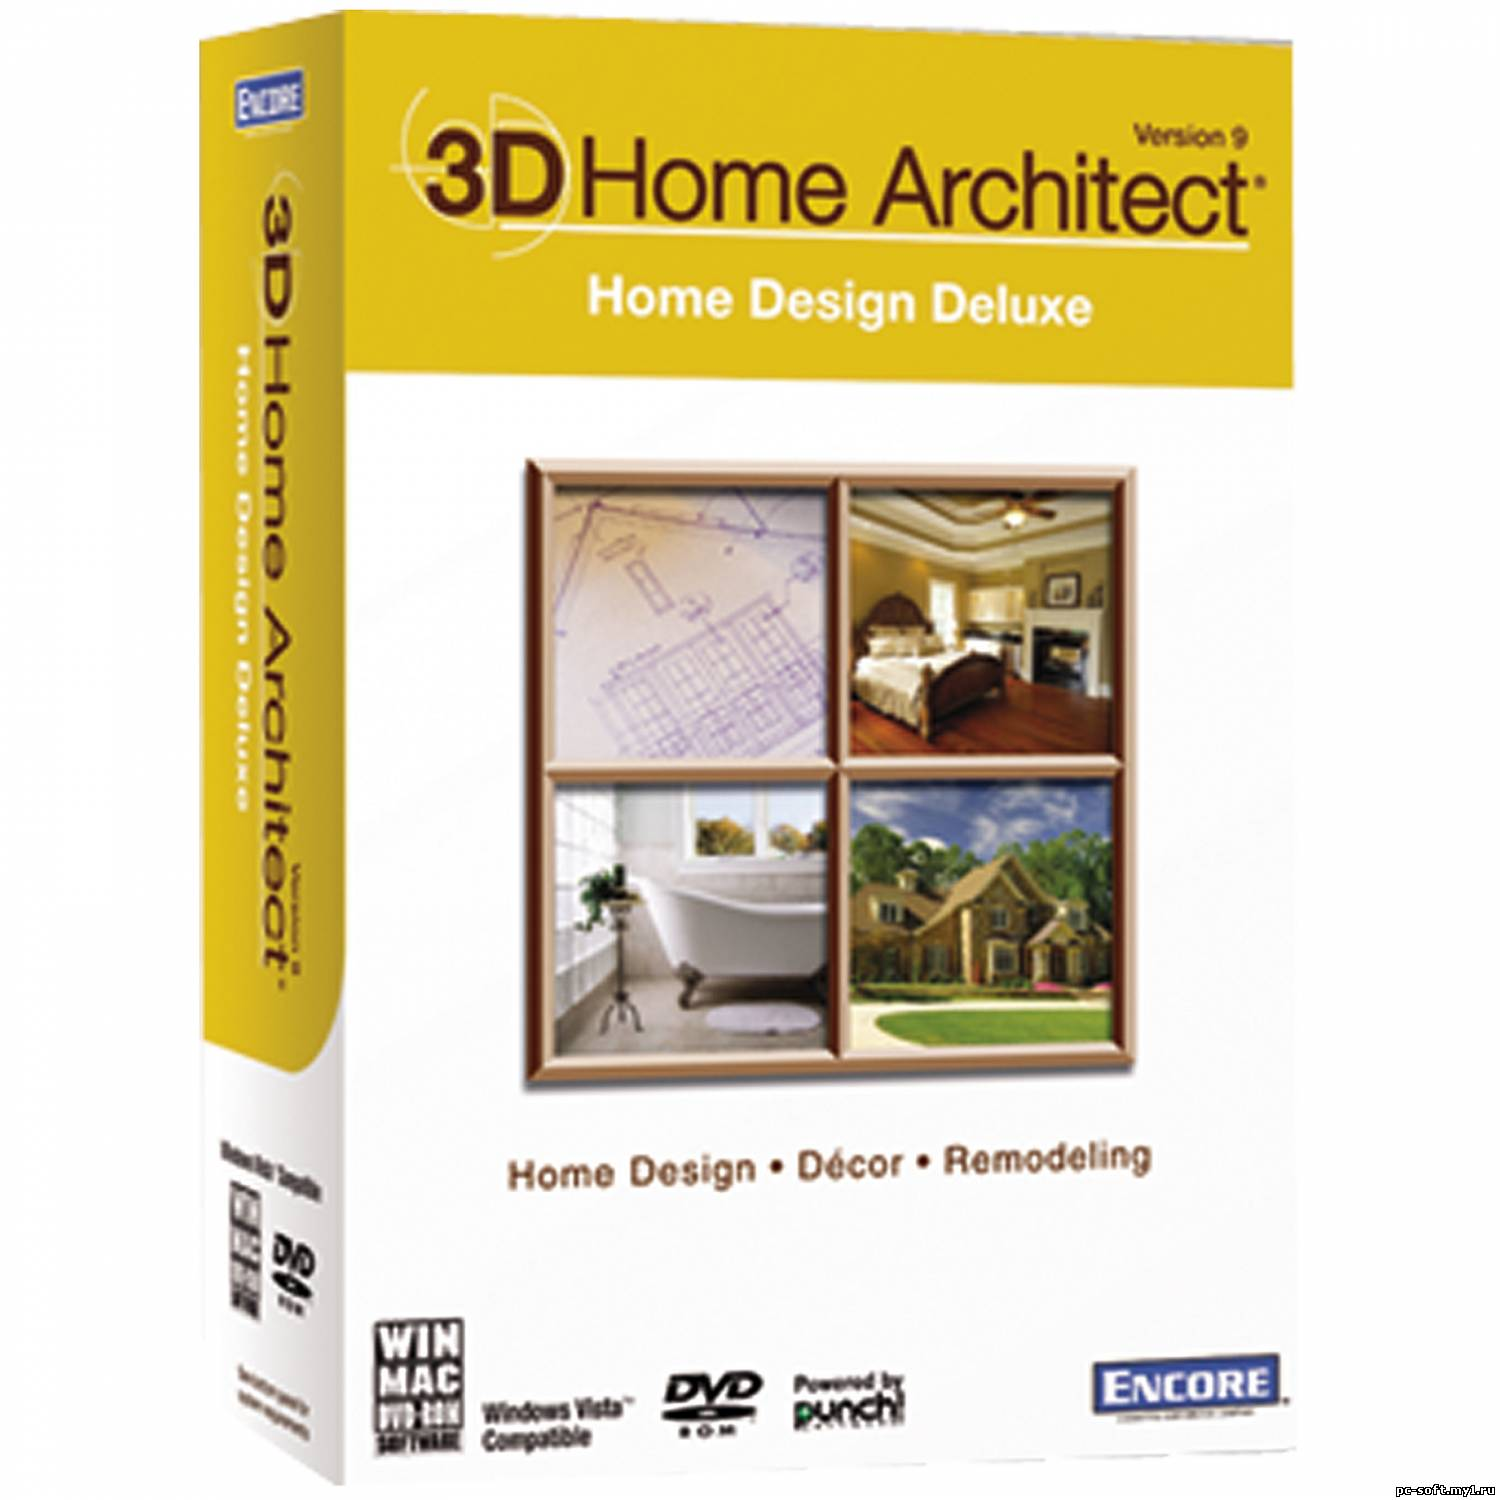 3d Home Architect Design Deluxe 8 Review » Картинки и